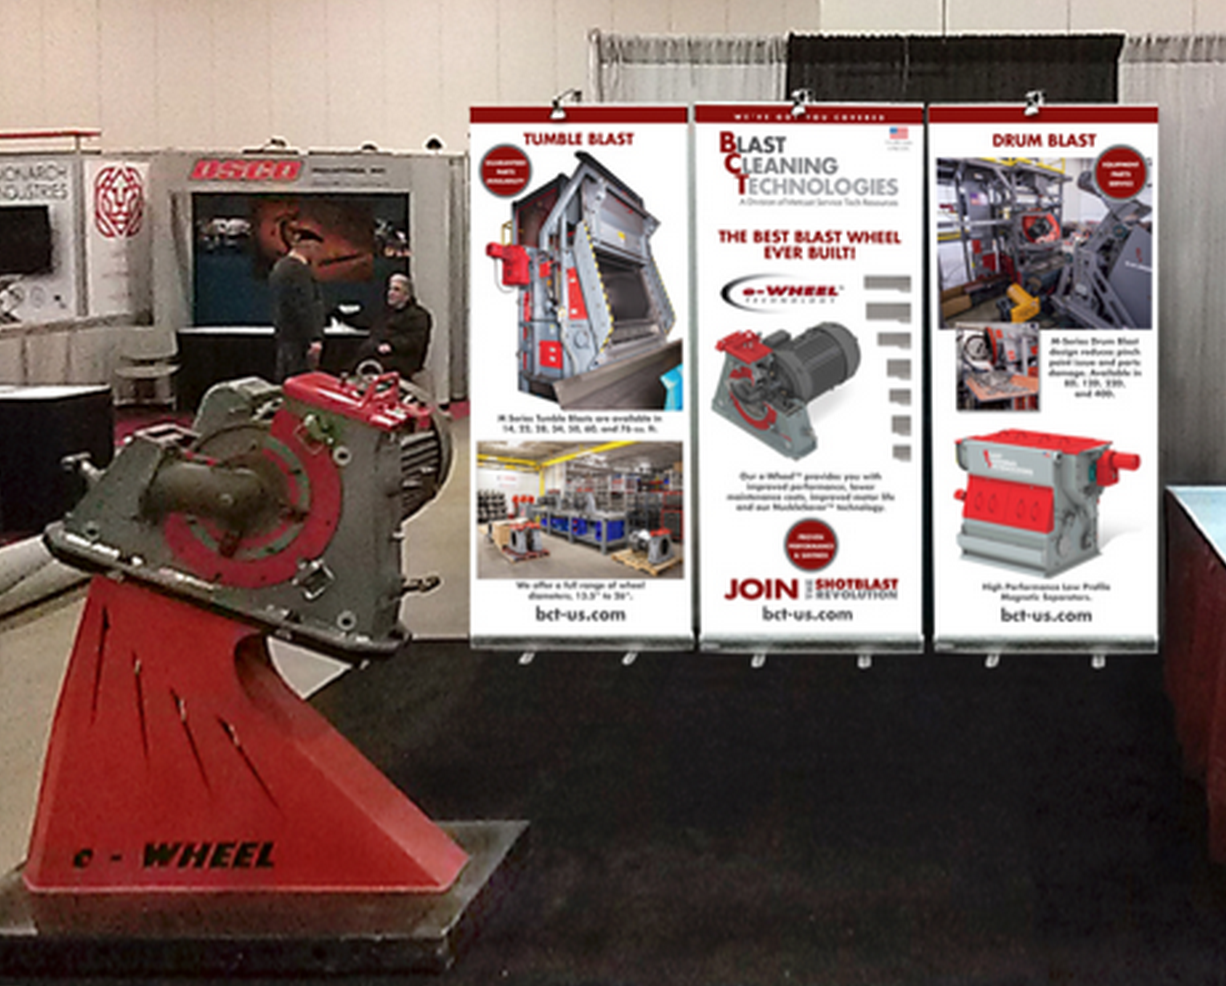 Blast Cleaning Technologies booth at MetalCasting Congress